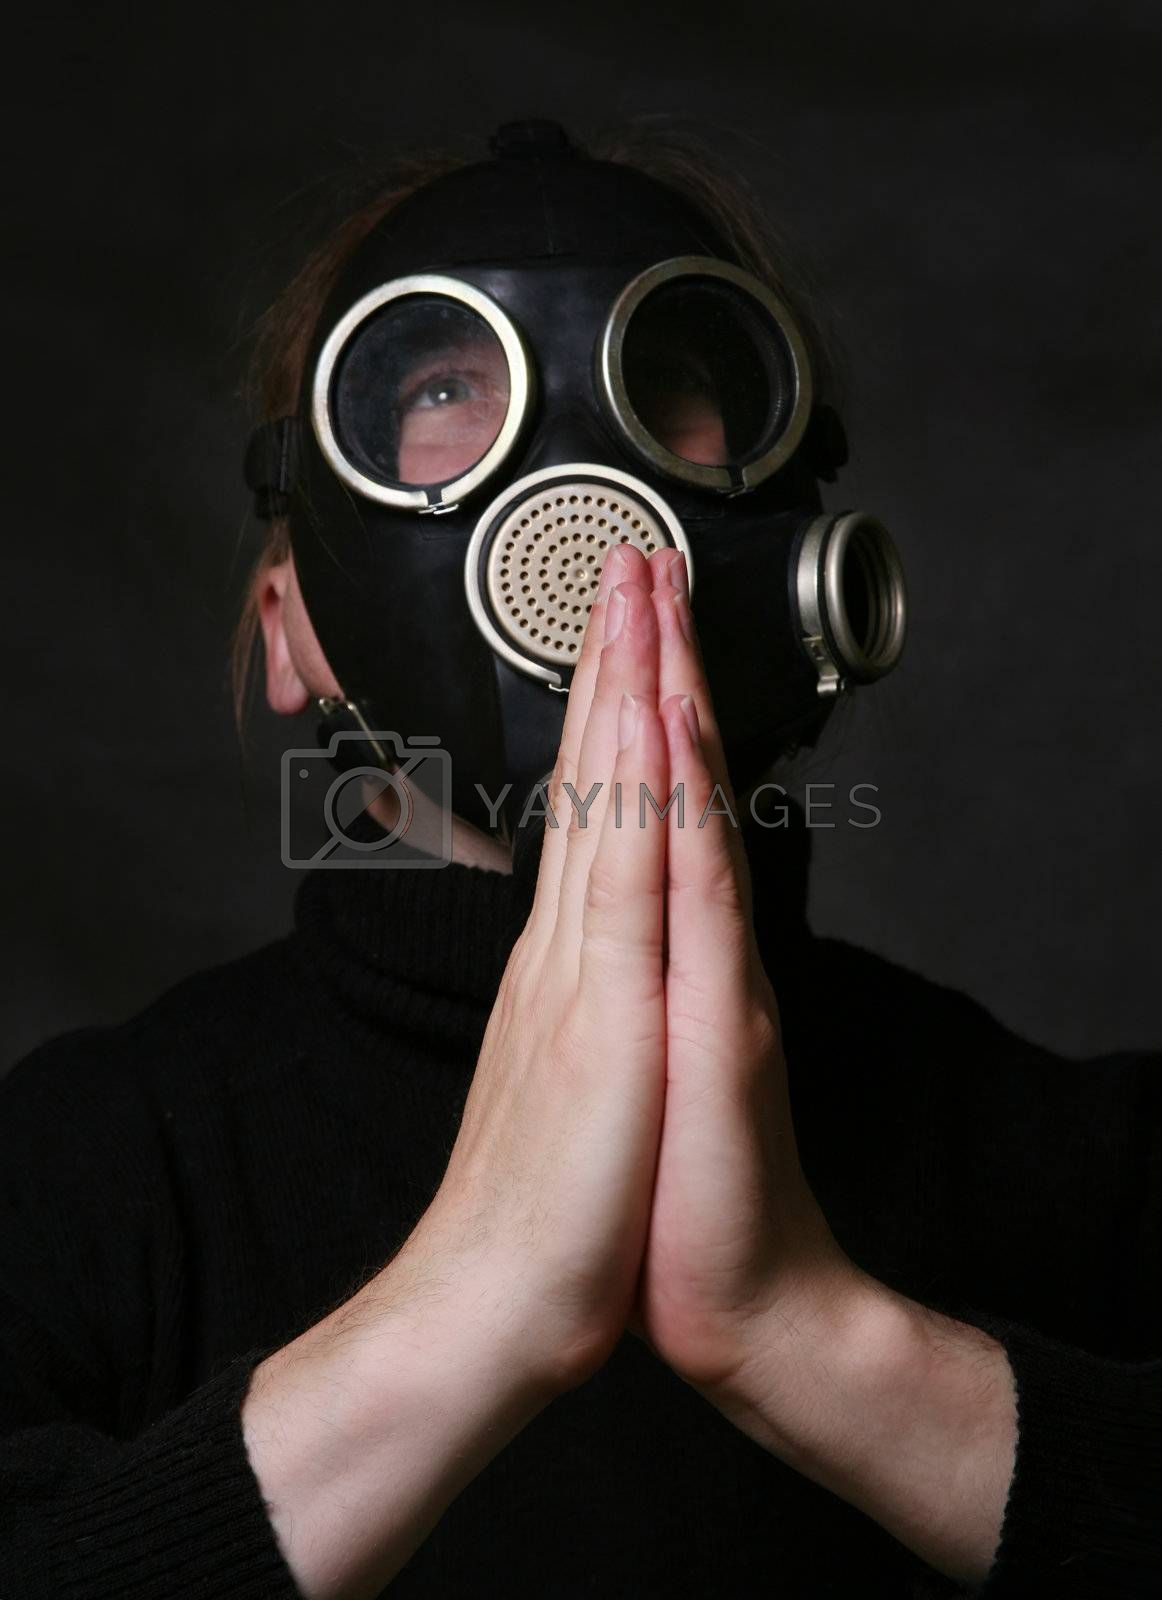 The man in a gas mask on a dark background. Hands are combined as at prayer